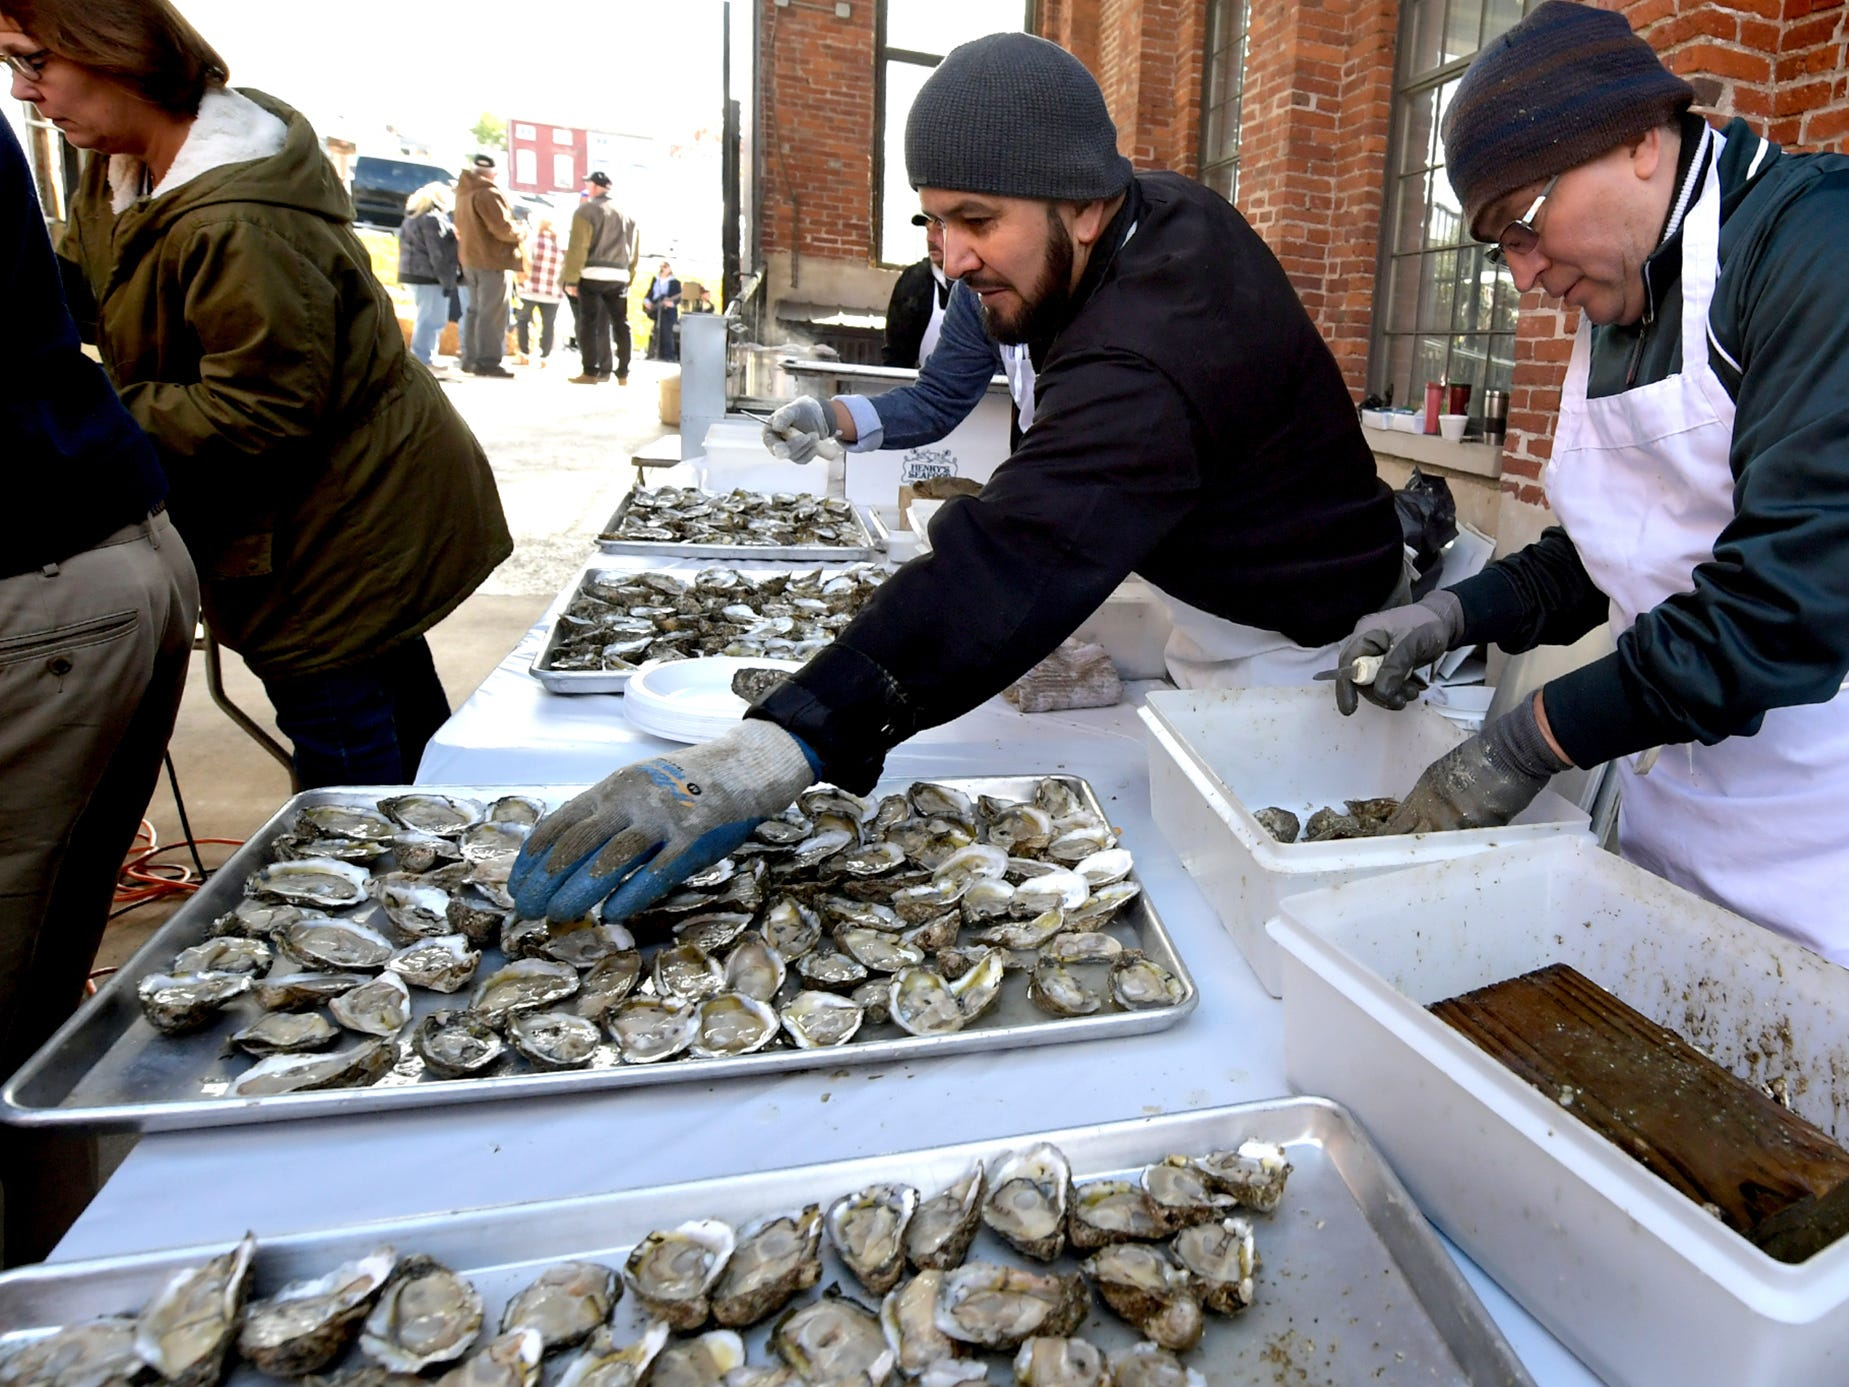 Henry's Seafood employees Miguel Bergara, left, and Joe Machado shuck oysters at the Agricultural & Industrial Museum during the History On The Half Shell fundraising event sponsored by the York County History Center Sunday, October 21, 2018. The annual event offered oysters, a variety of food, drink, music, children's activities and historical presentations. Bill Kalina photo